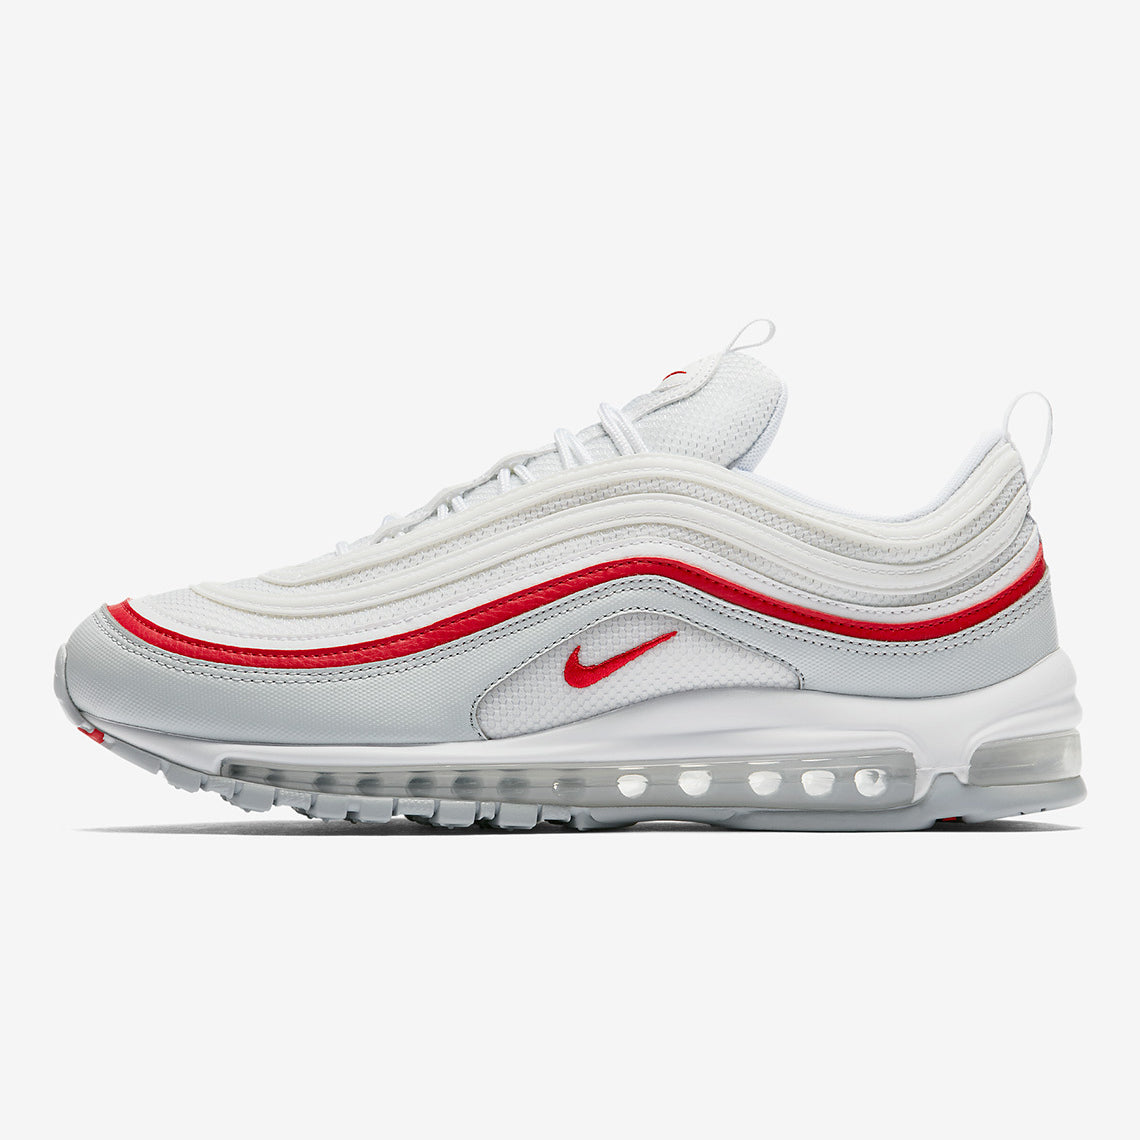 Nike Air Max 97 OG QS PURE PLATINUM WHITE-UNIVERSITY RED (AR5531-002 ... 36e9f9802